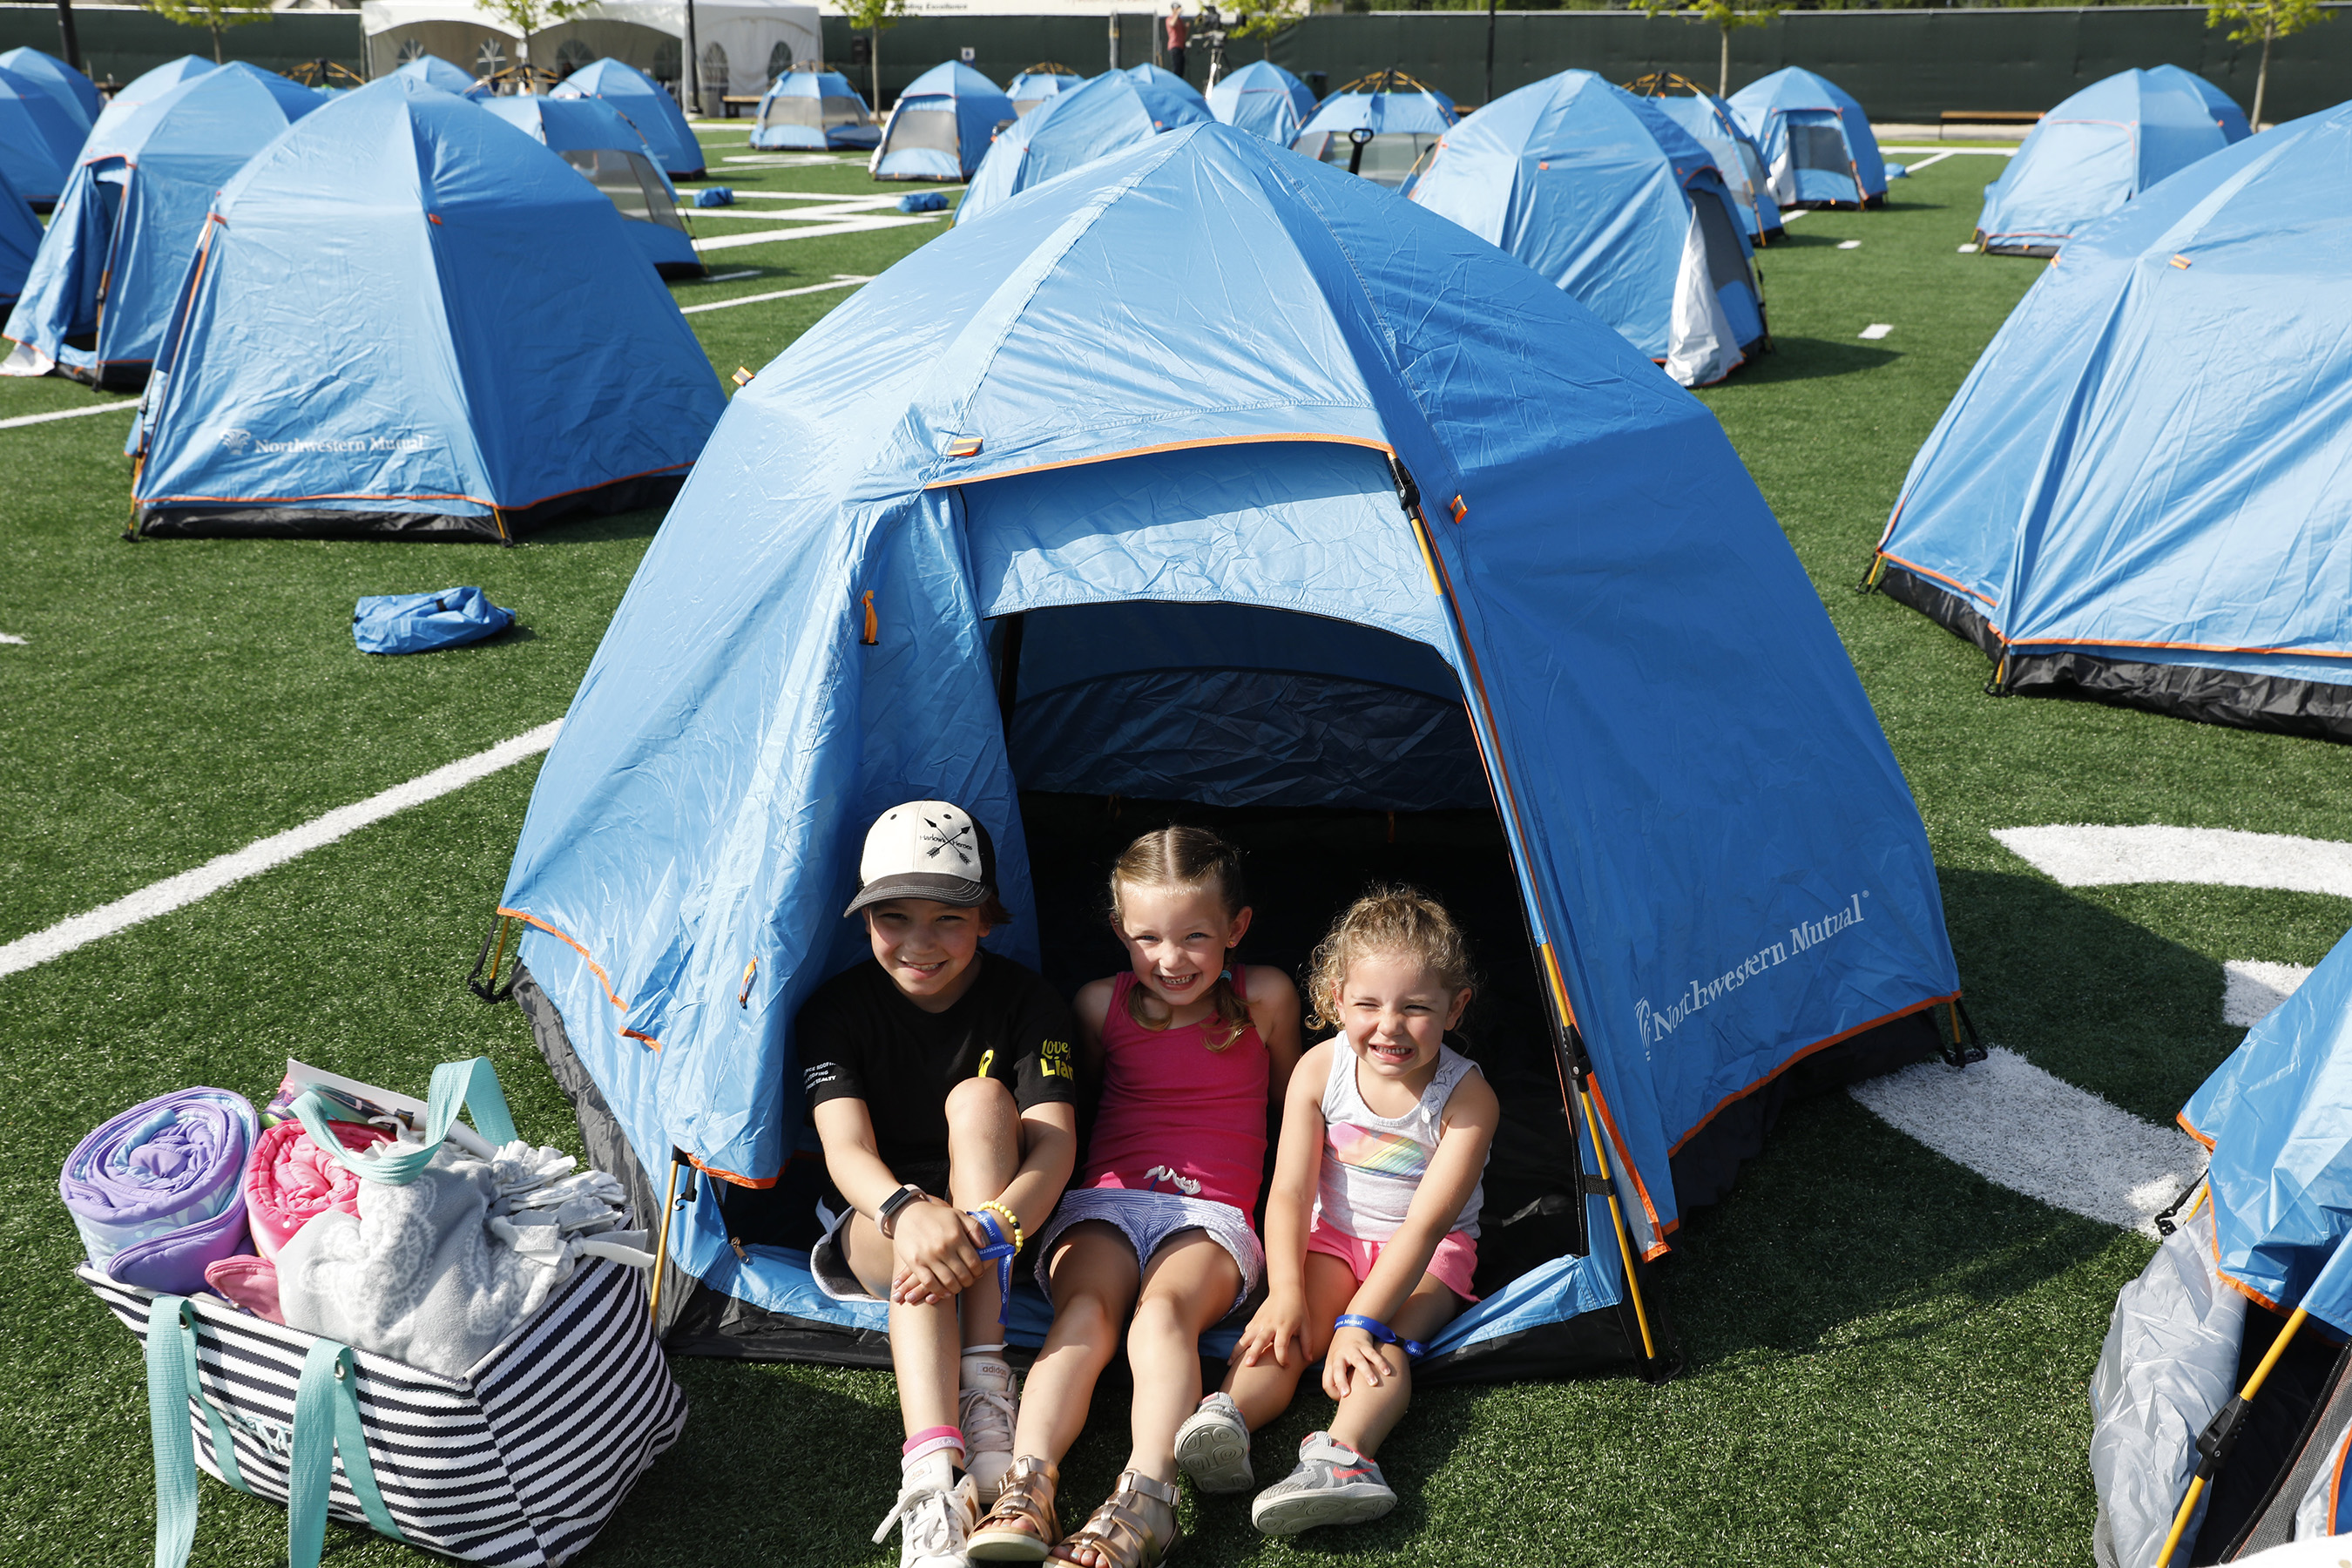 Northwestern Mutual's Ultimate Campout Fighting Childhood Cancer: Camp is an invaluable experience for children fighting cancer. Kids enjoy the sun after setting up  tents on the field at the Green Bay Packer's Titletown development.